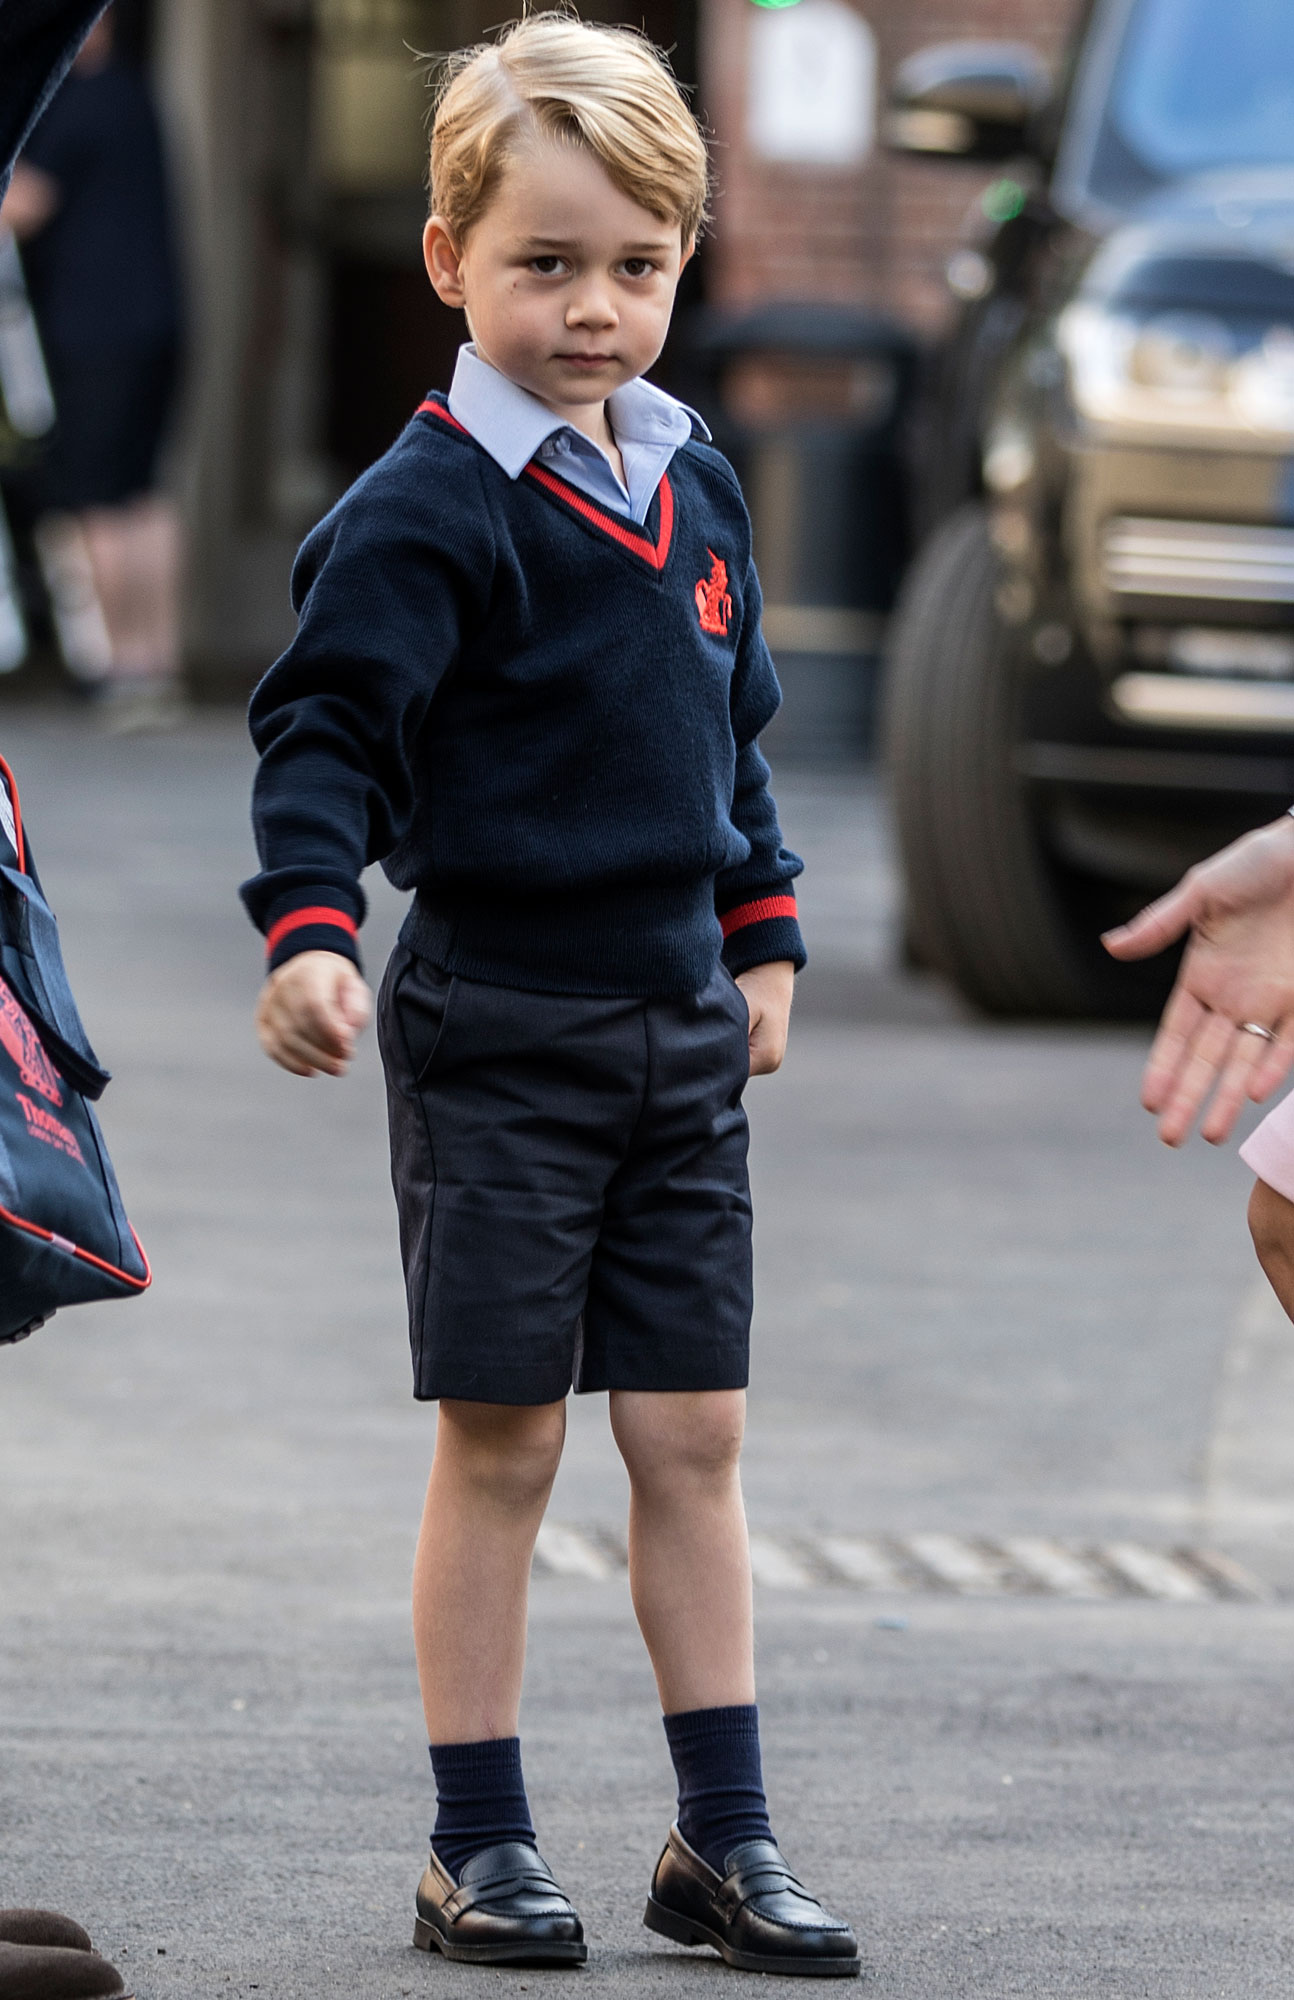 Prince William Reveals 4-Year-Old Prince George's Favorite Movie — and It's Royally Perfect